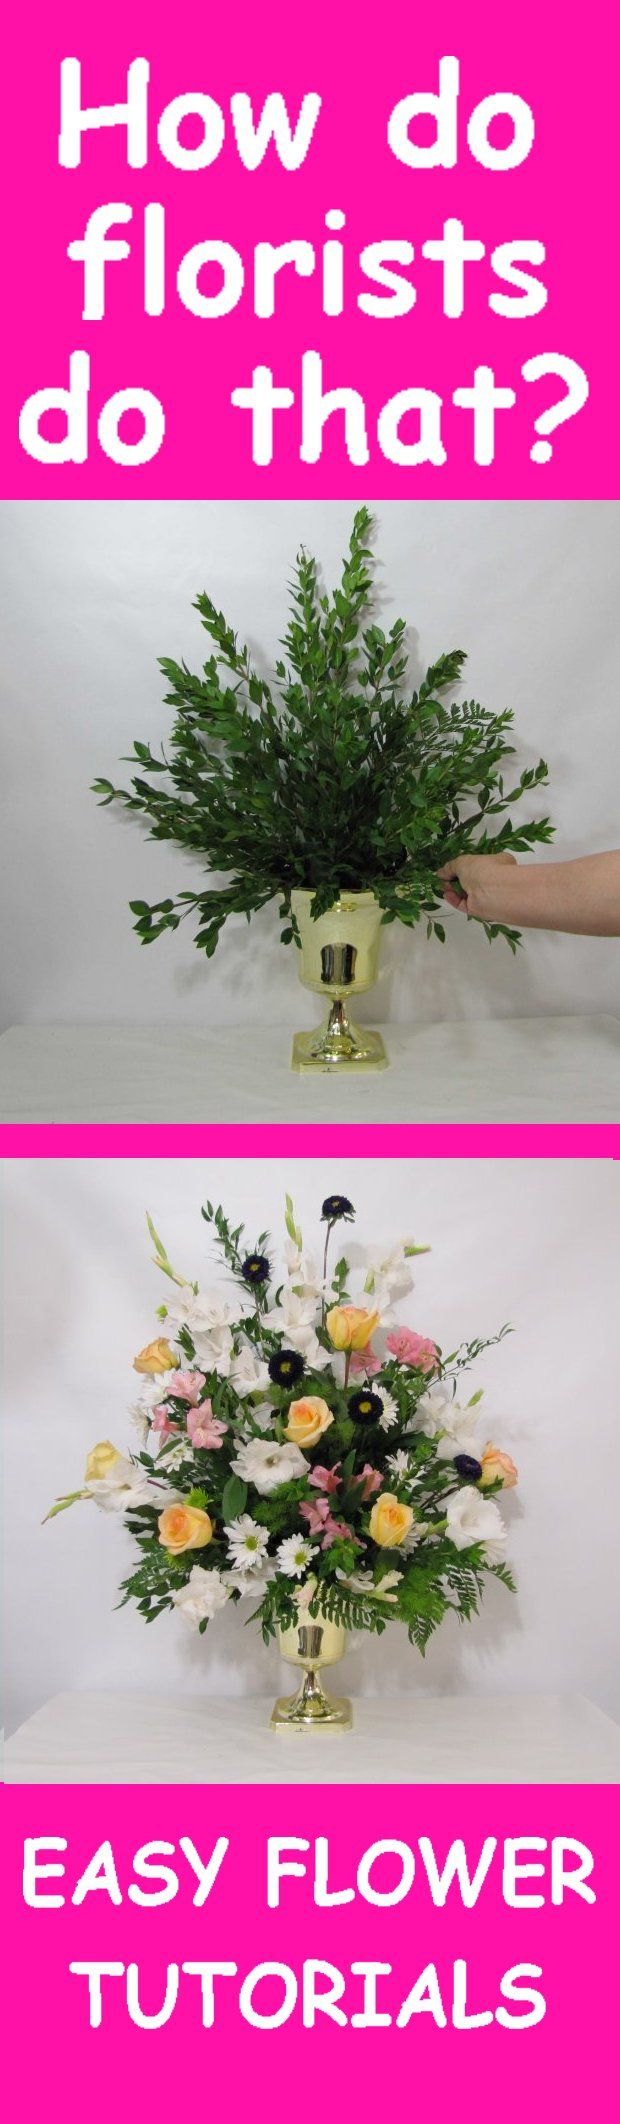 Altar Flowers Tutorial - Adding Yellow Roses